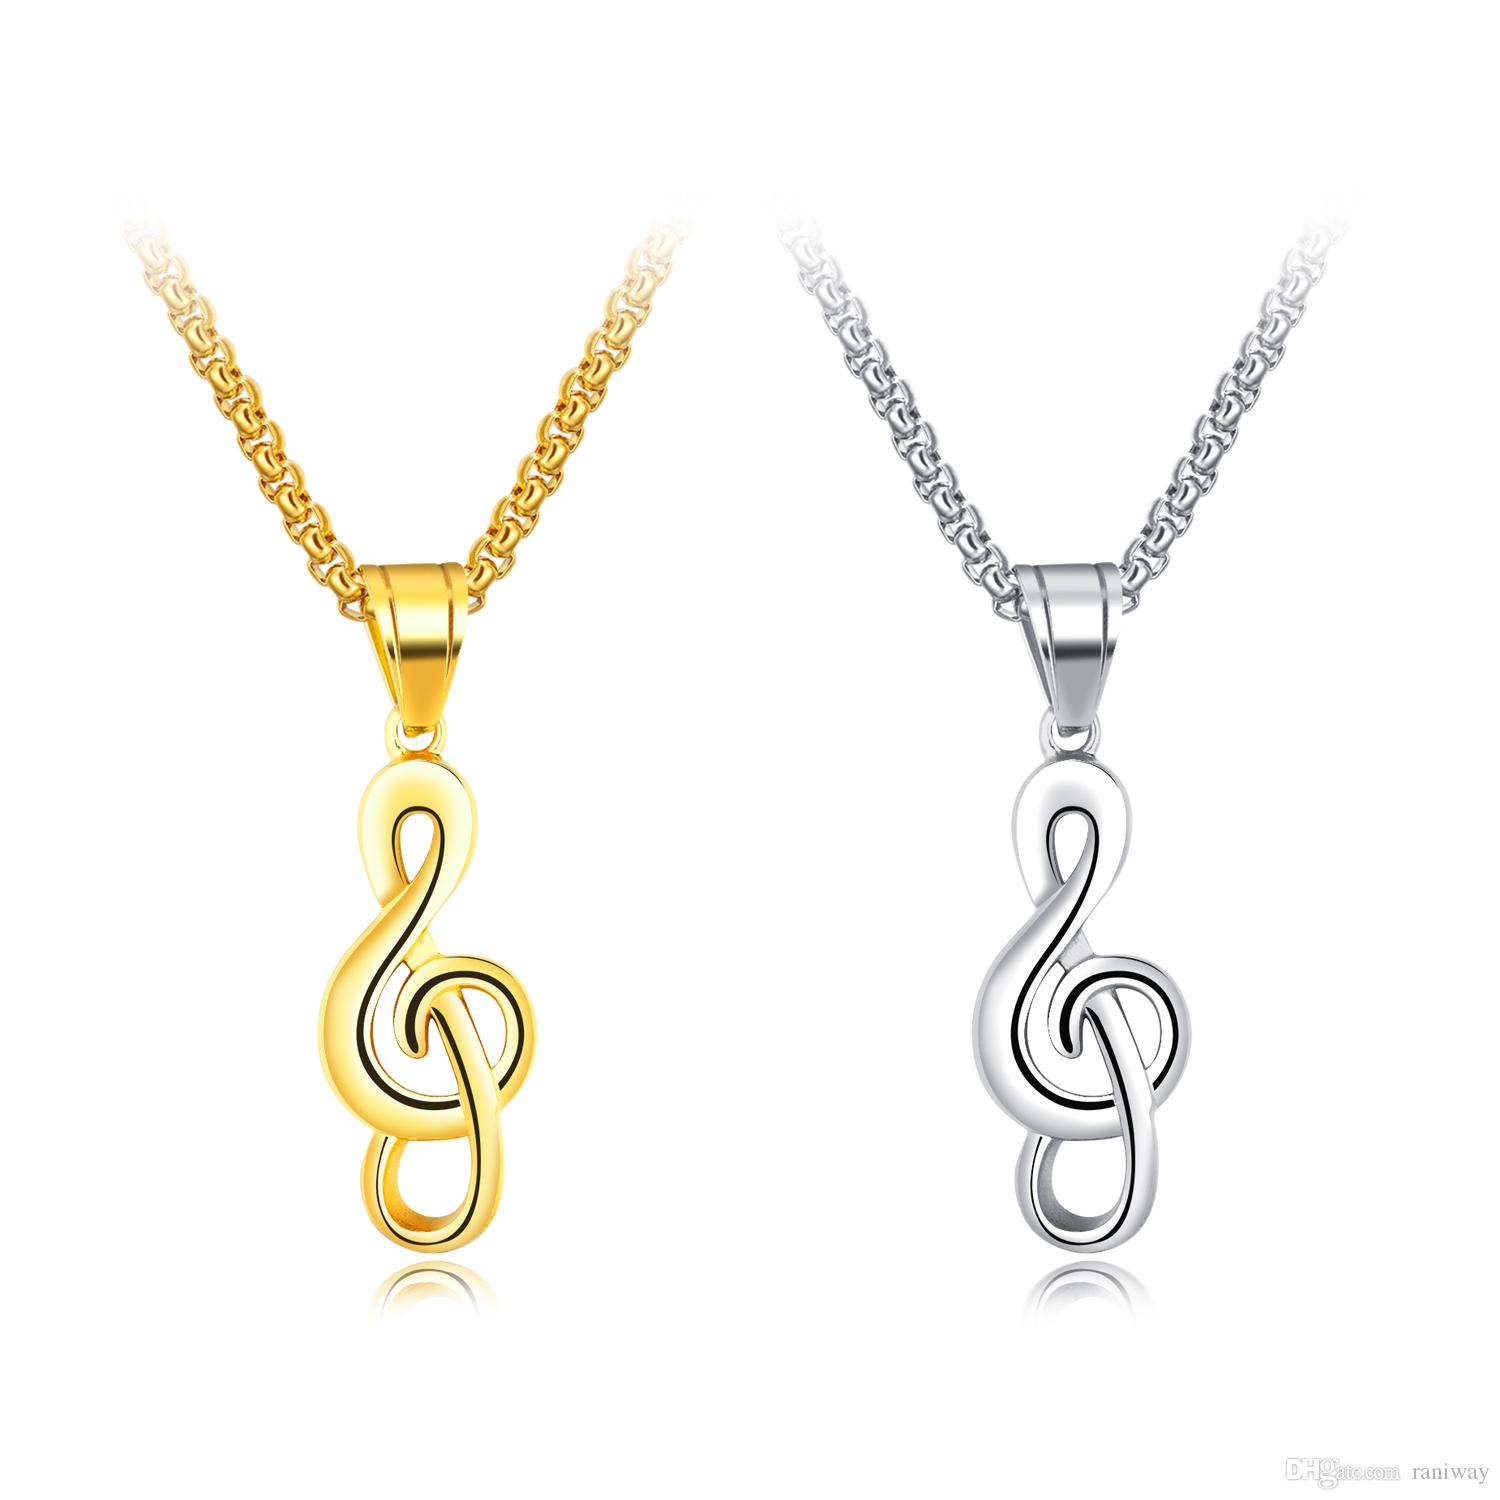 note stone pendant yellow musical in necklace gold diamond round